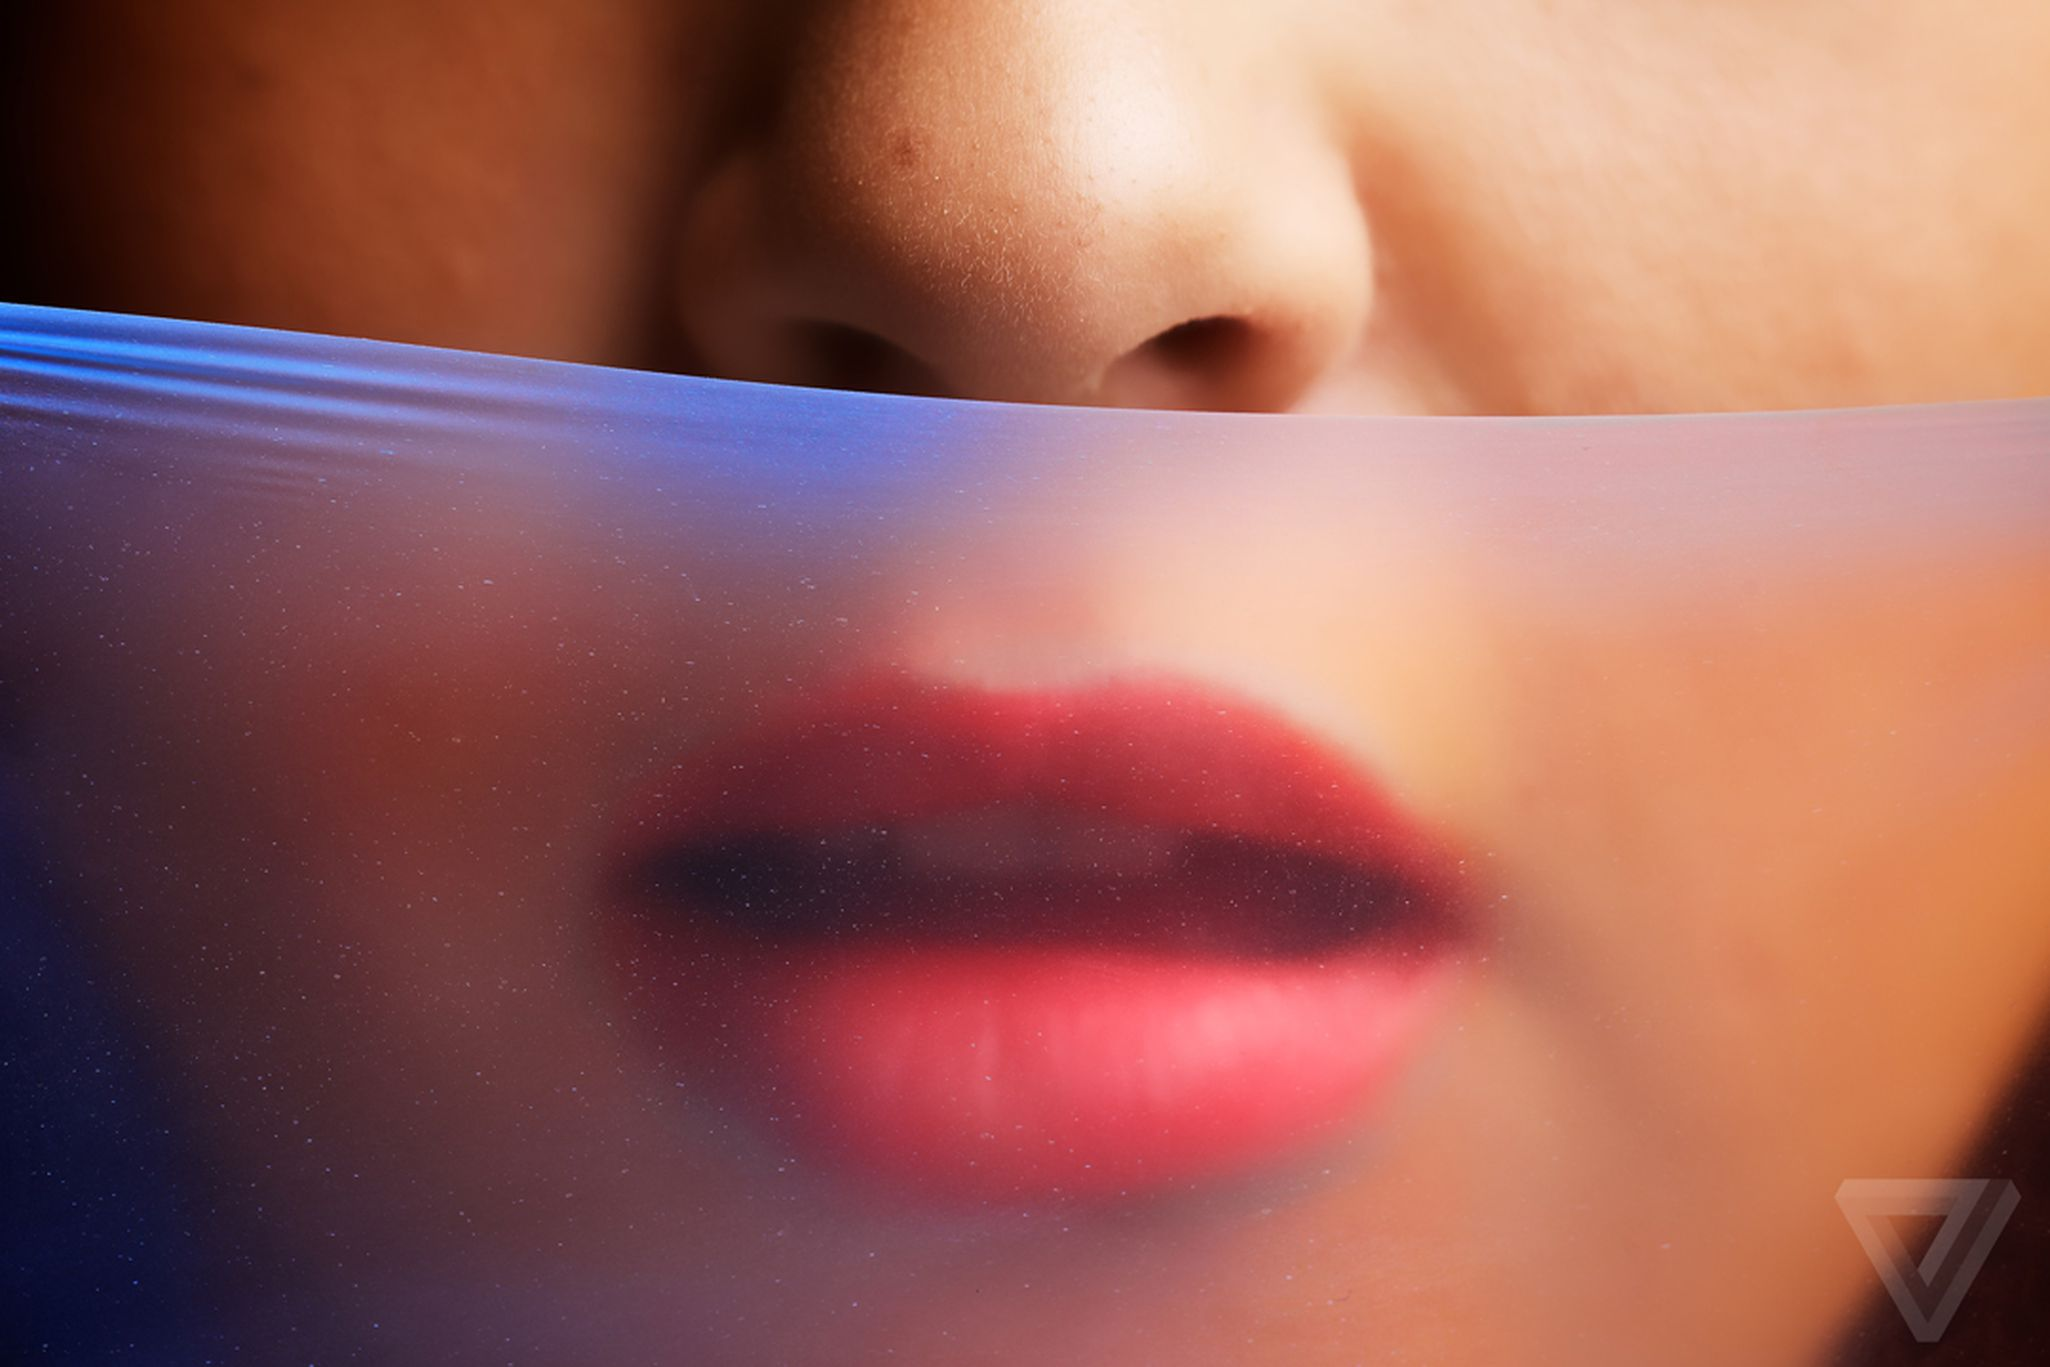 Oral history: the sexual misadventures of the dental dam